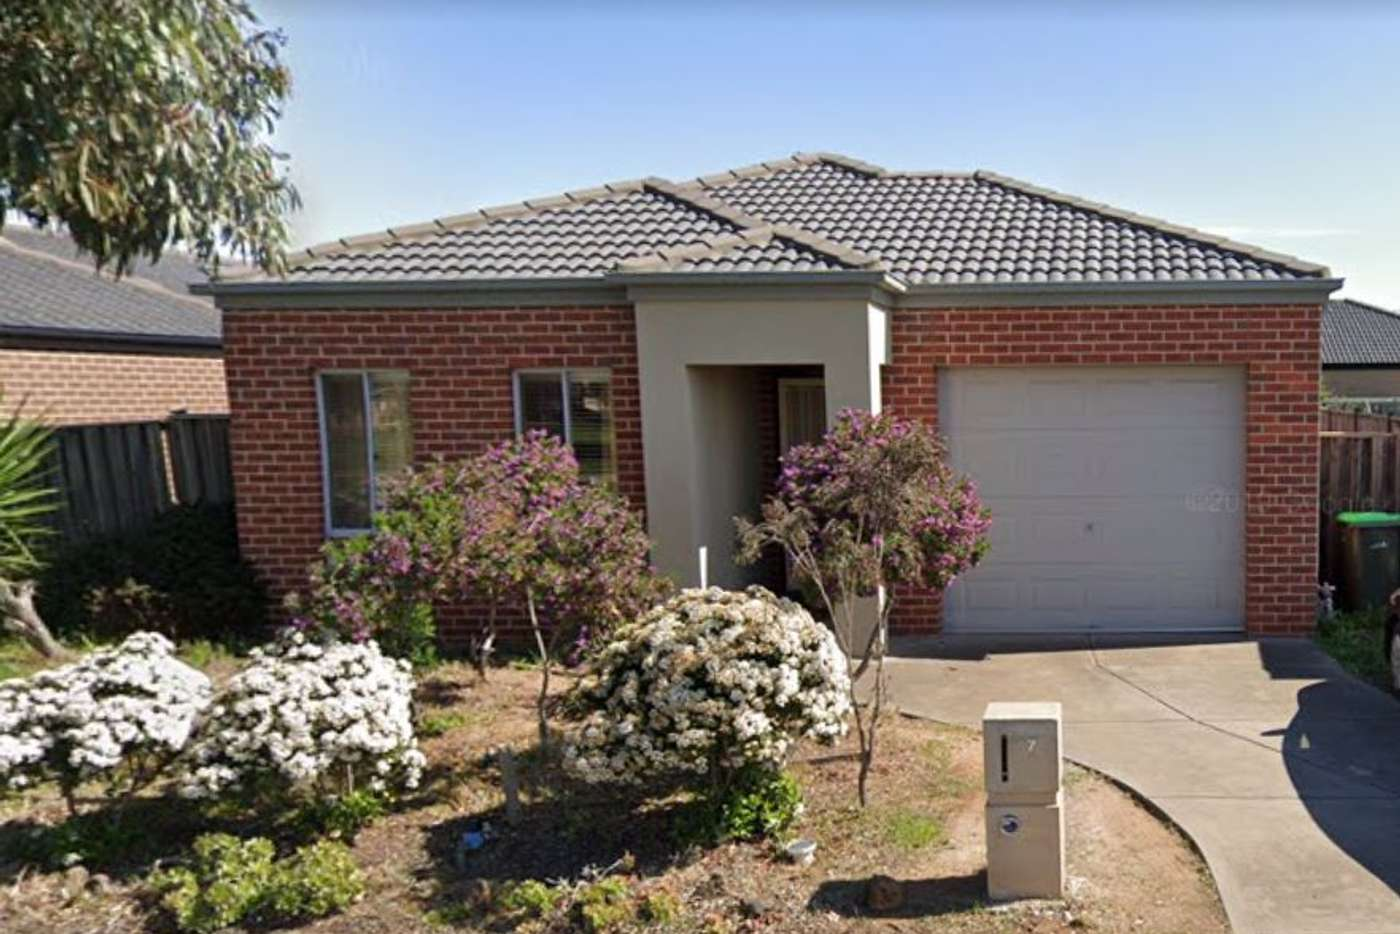 Main view of Homely house listing, 7 Meadowview Way, Tarneit VIC 3029